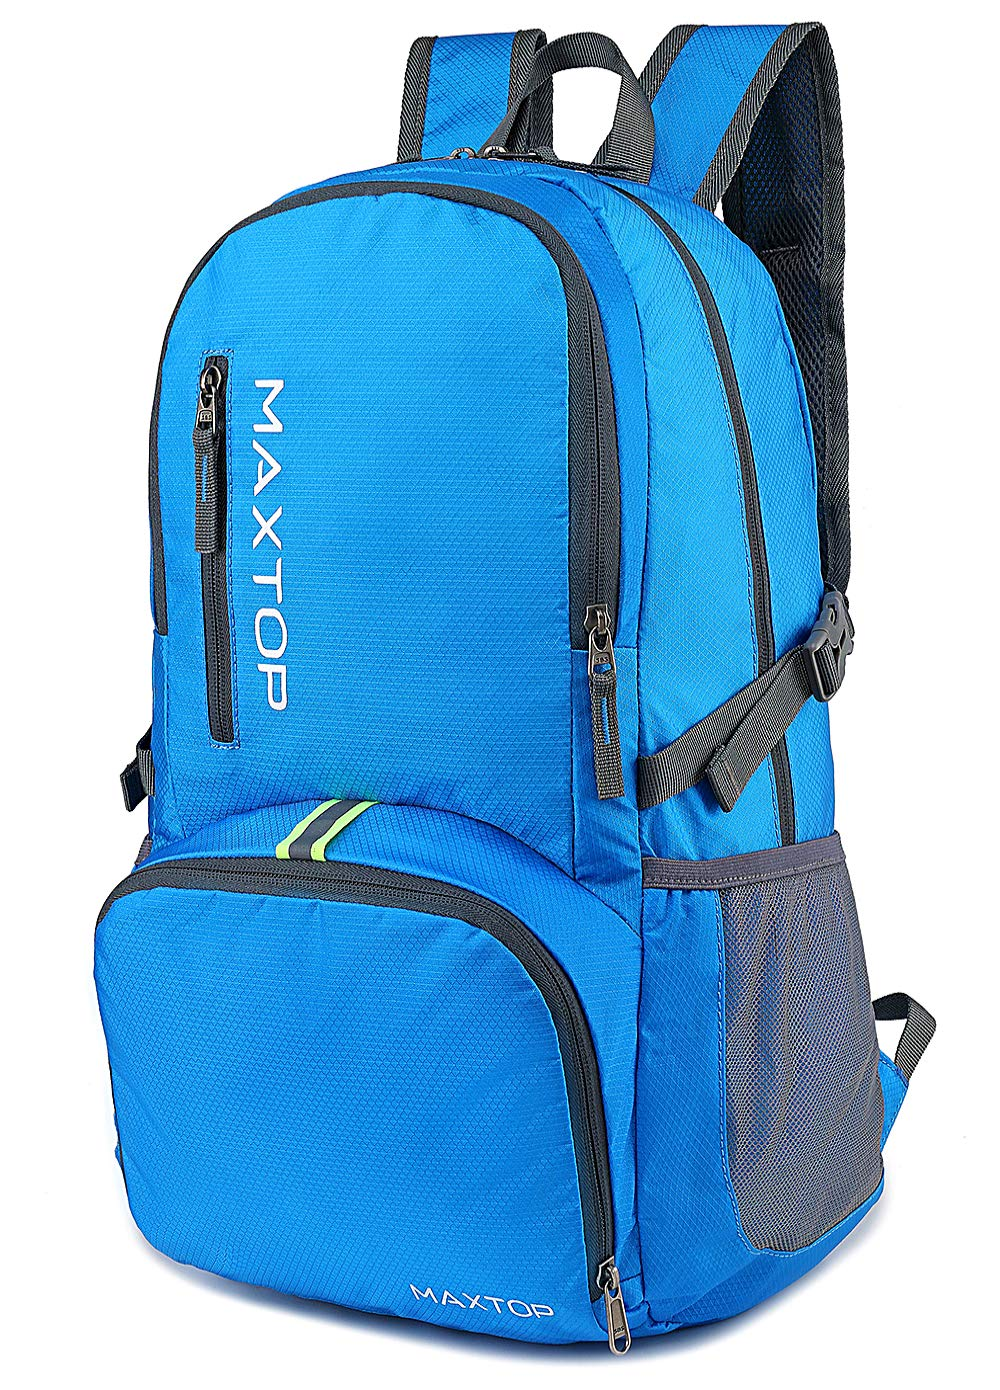 MAXTOP Ultra Lightweight Packable Backpack 35L Water Resistant Foldable Hiking Travel Daypack Durable